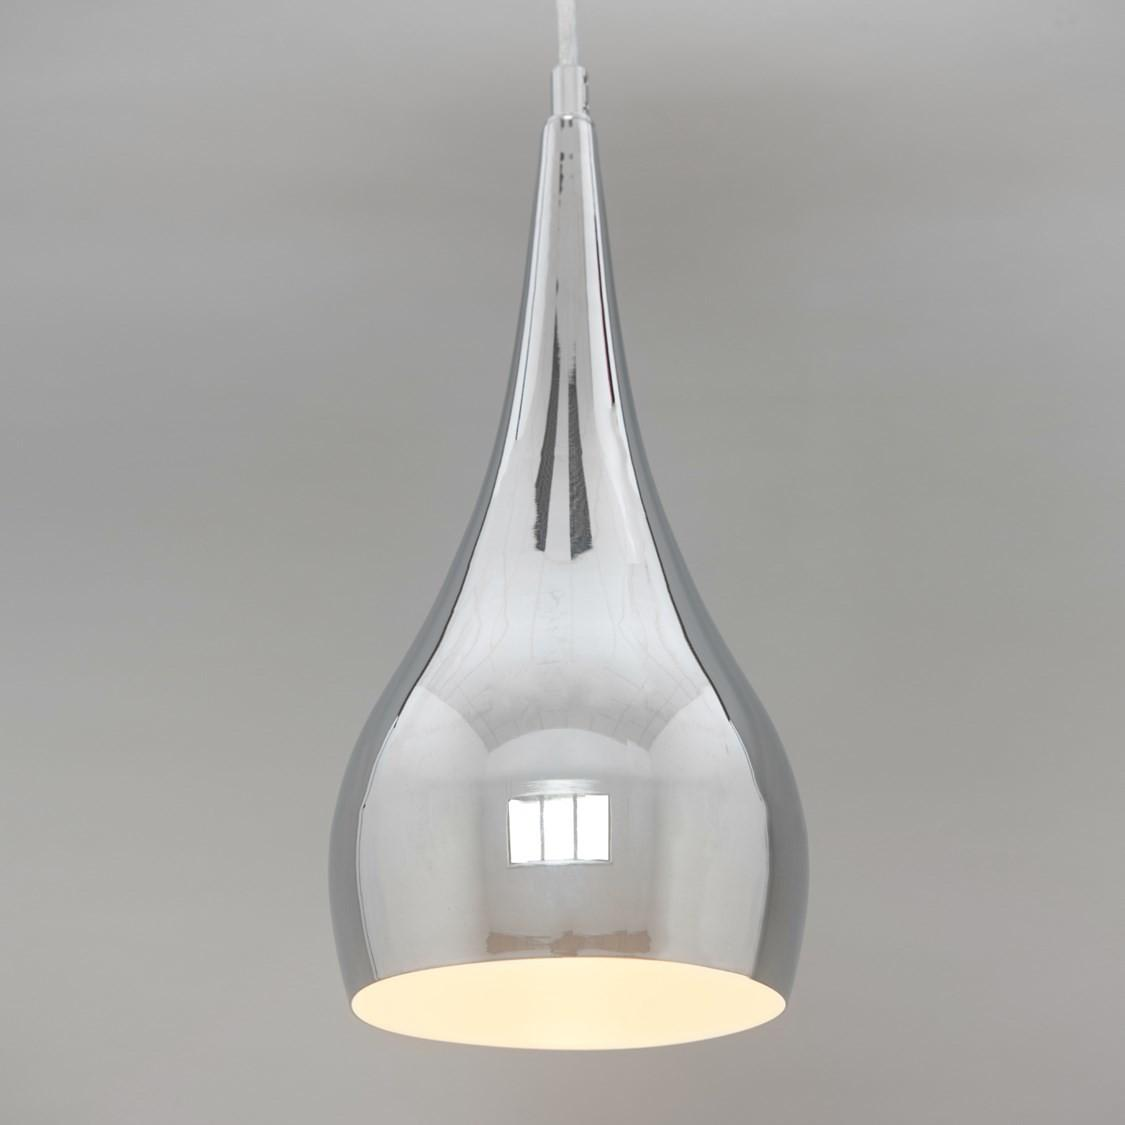 Modern Designer Teardrop Ceiling Pendant Light Chrome 16cm